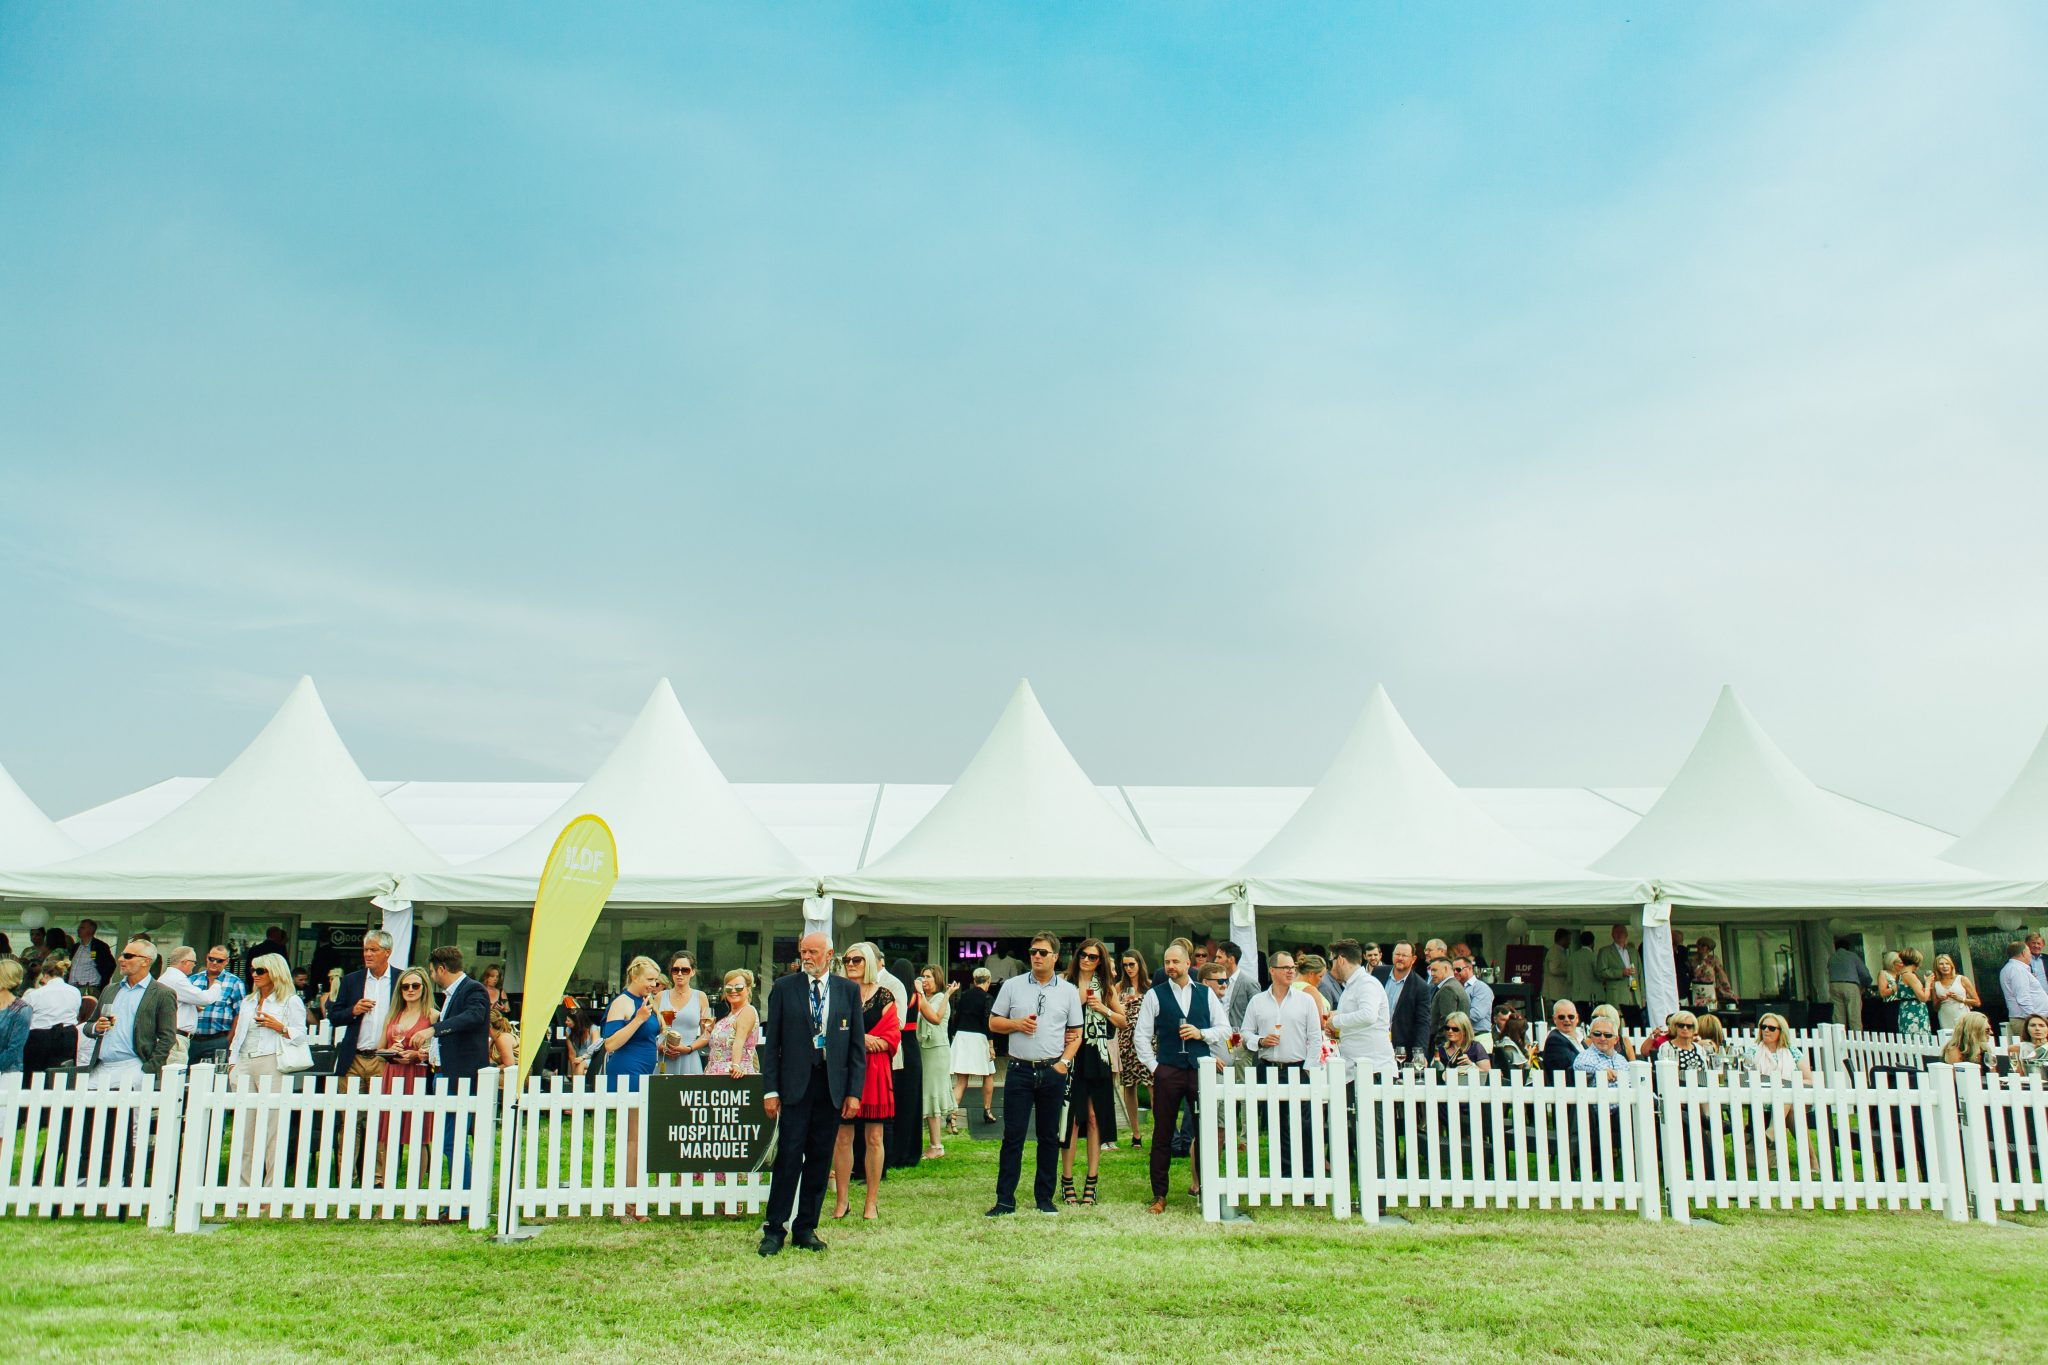 The Chester Polo Club Hospitality Marquee offers guests the VIP treatment fit for royalty.